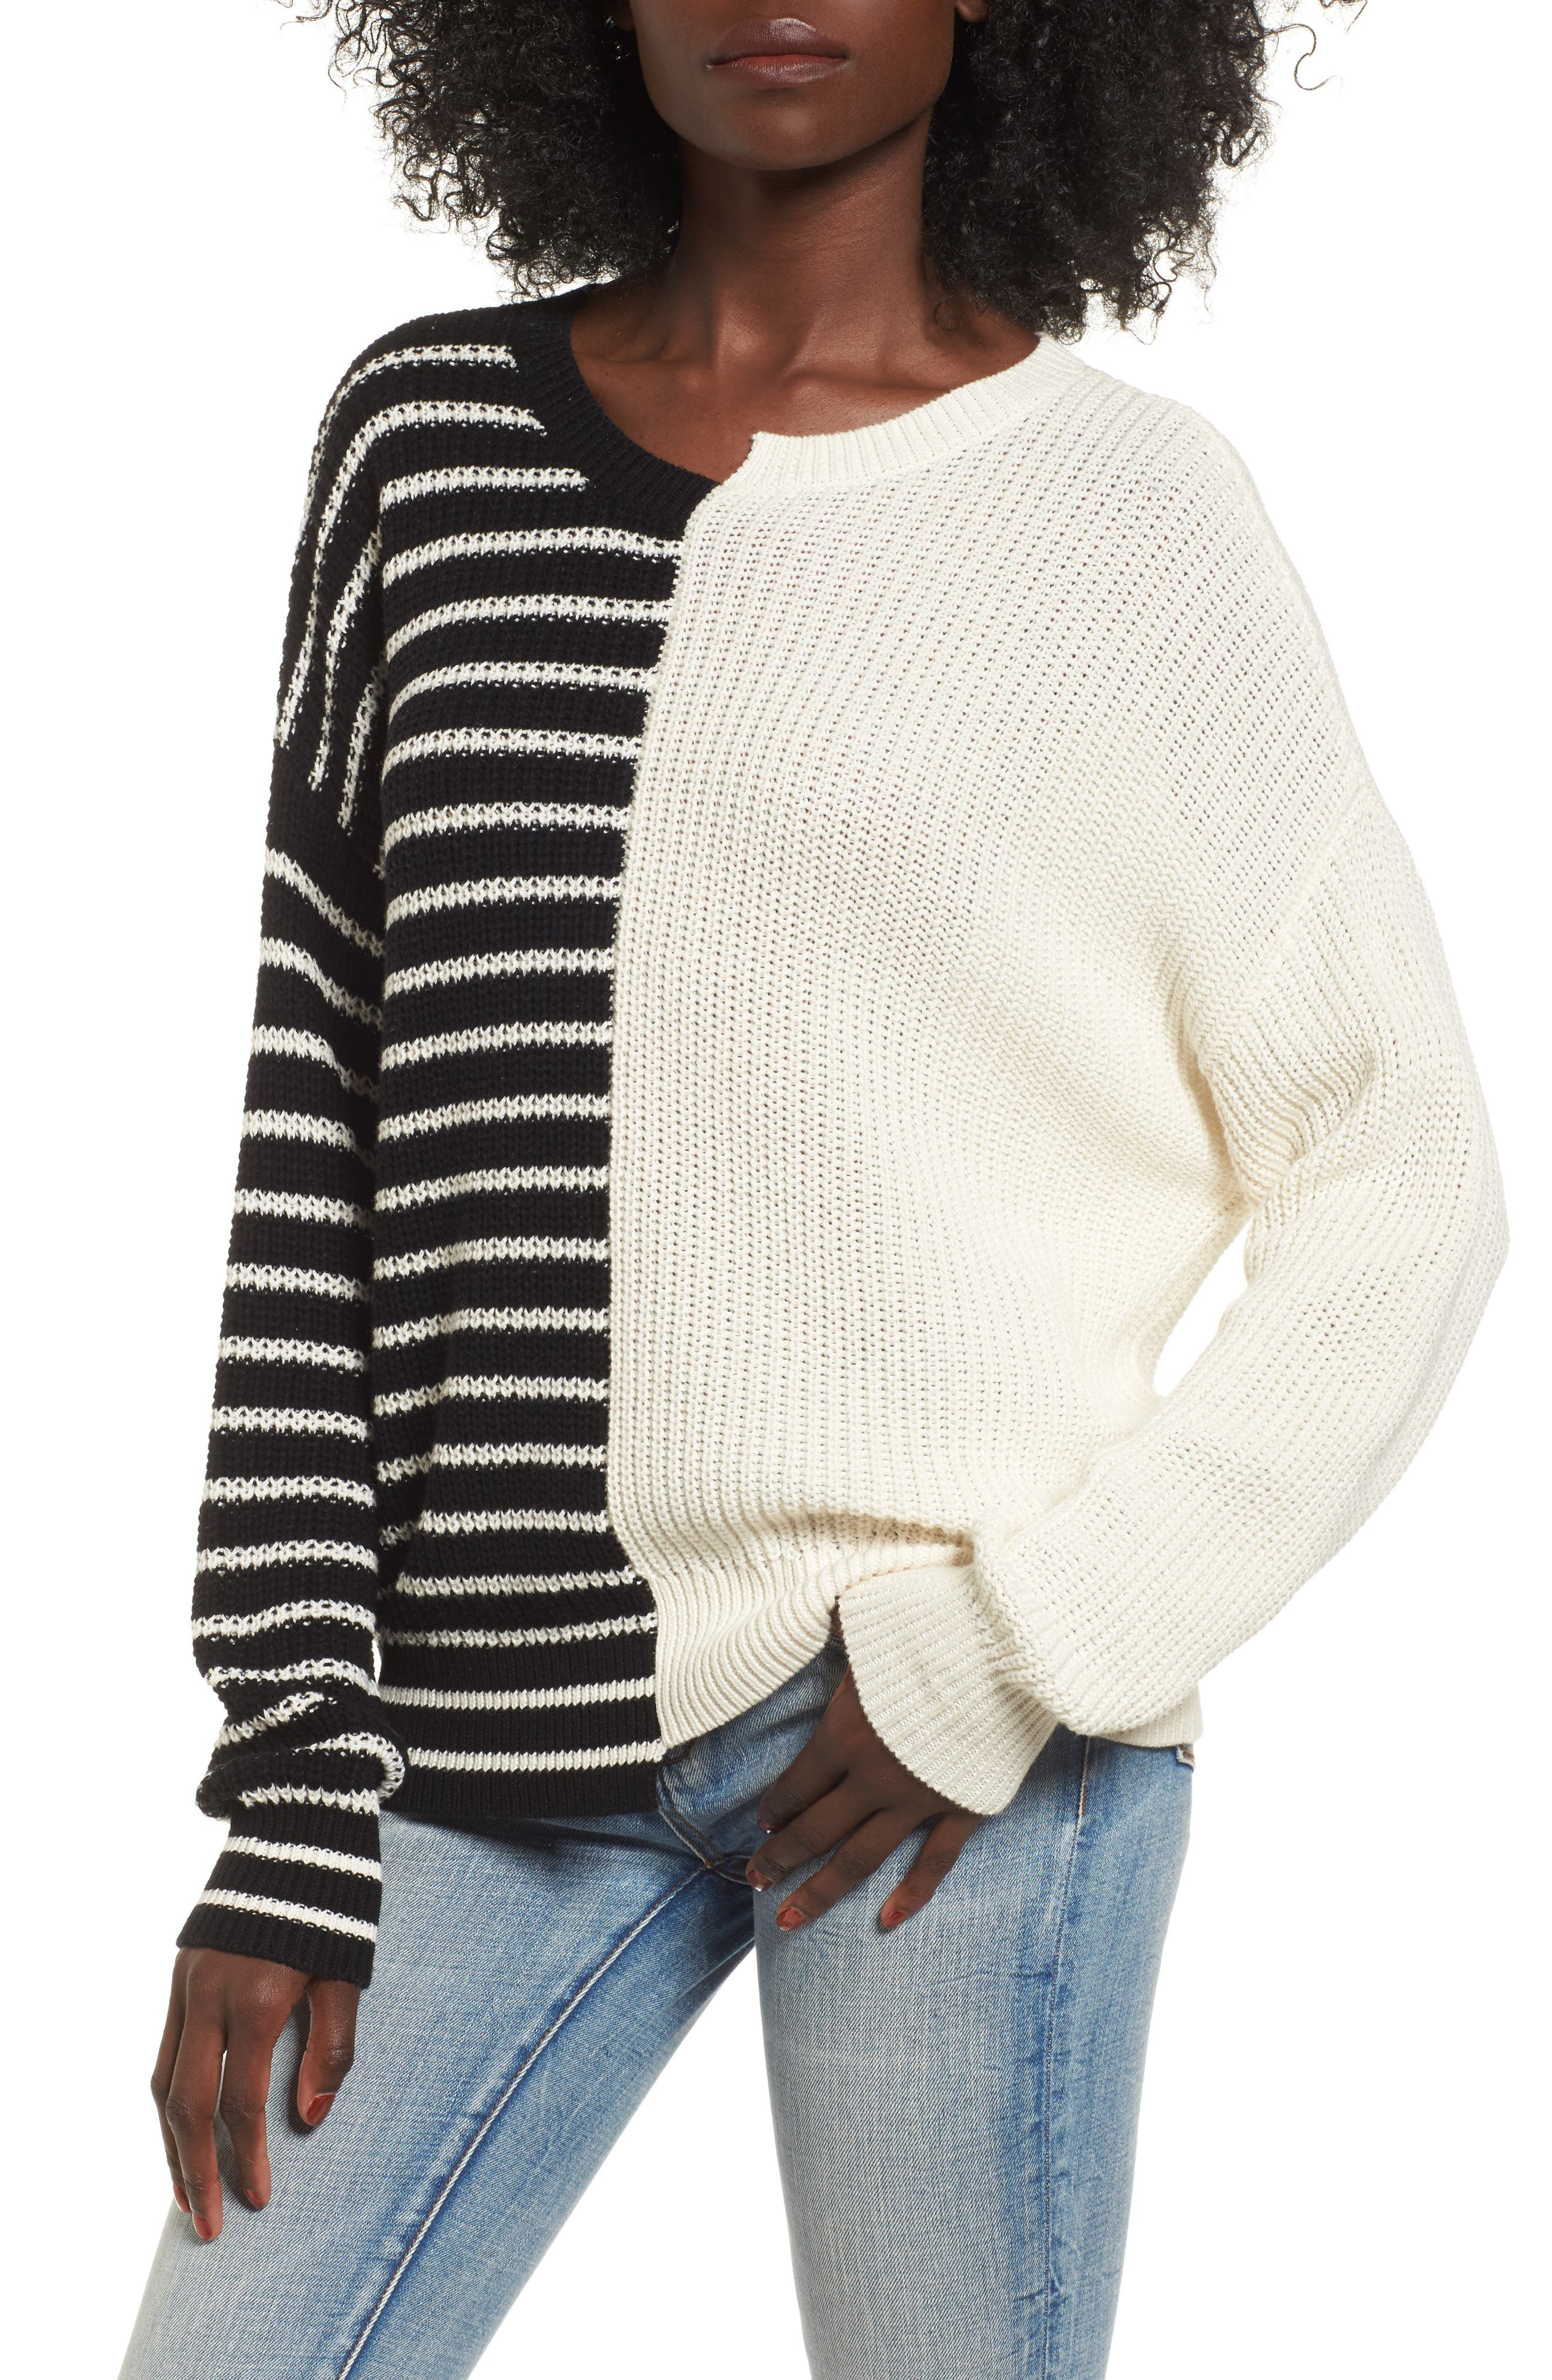 Alternate Image 1 Selected - BP. Colorblock Cotton Sweater